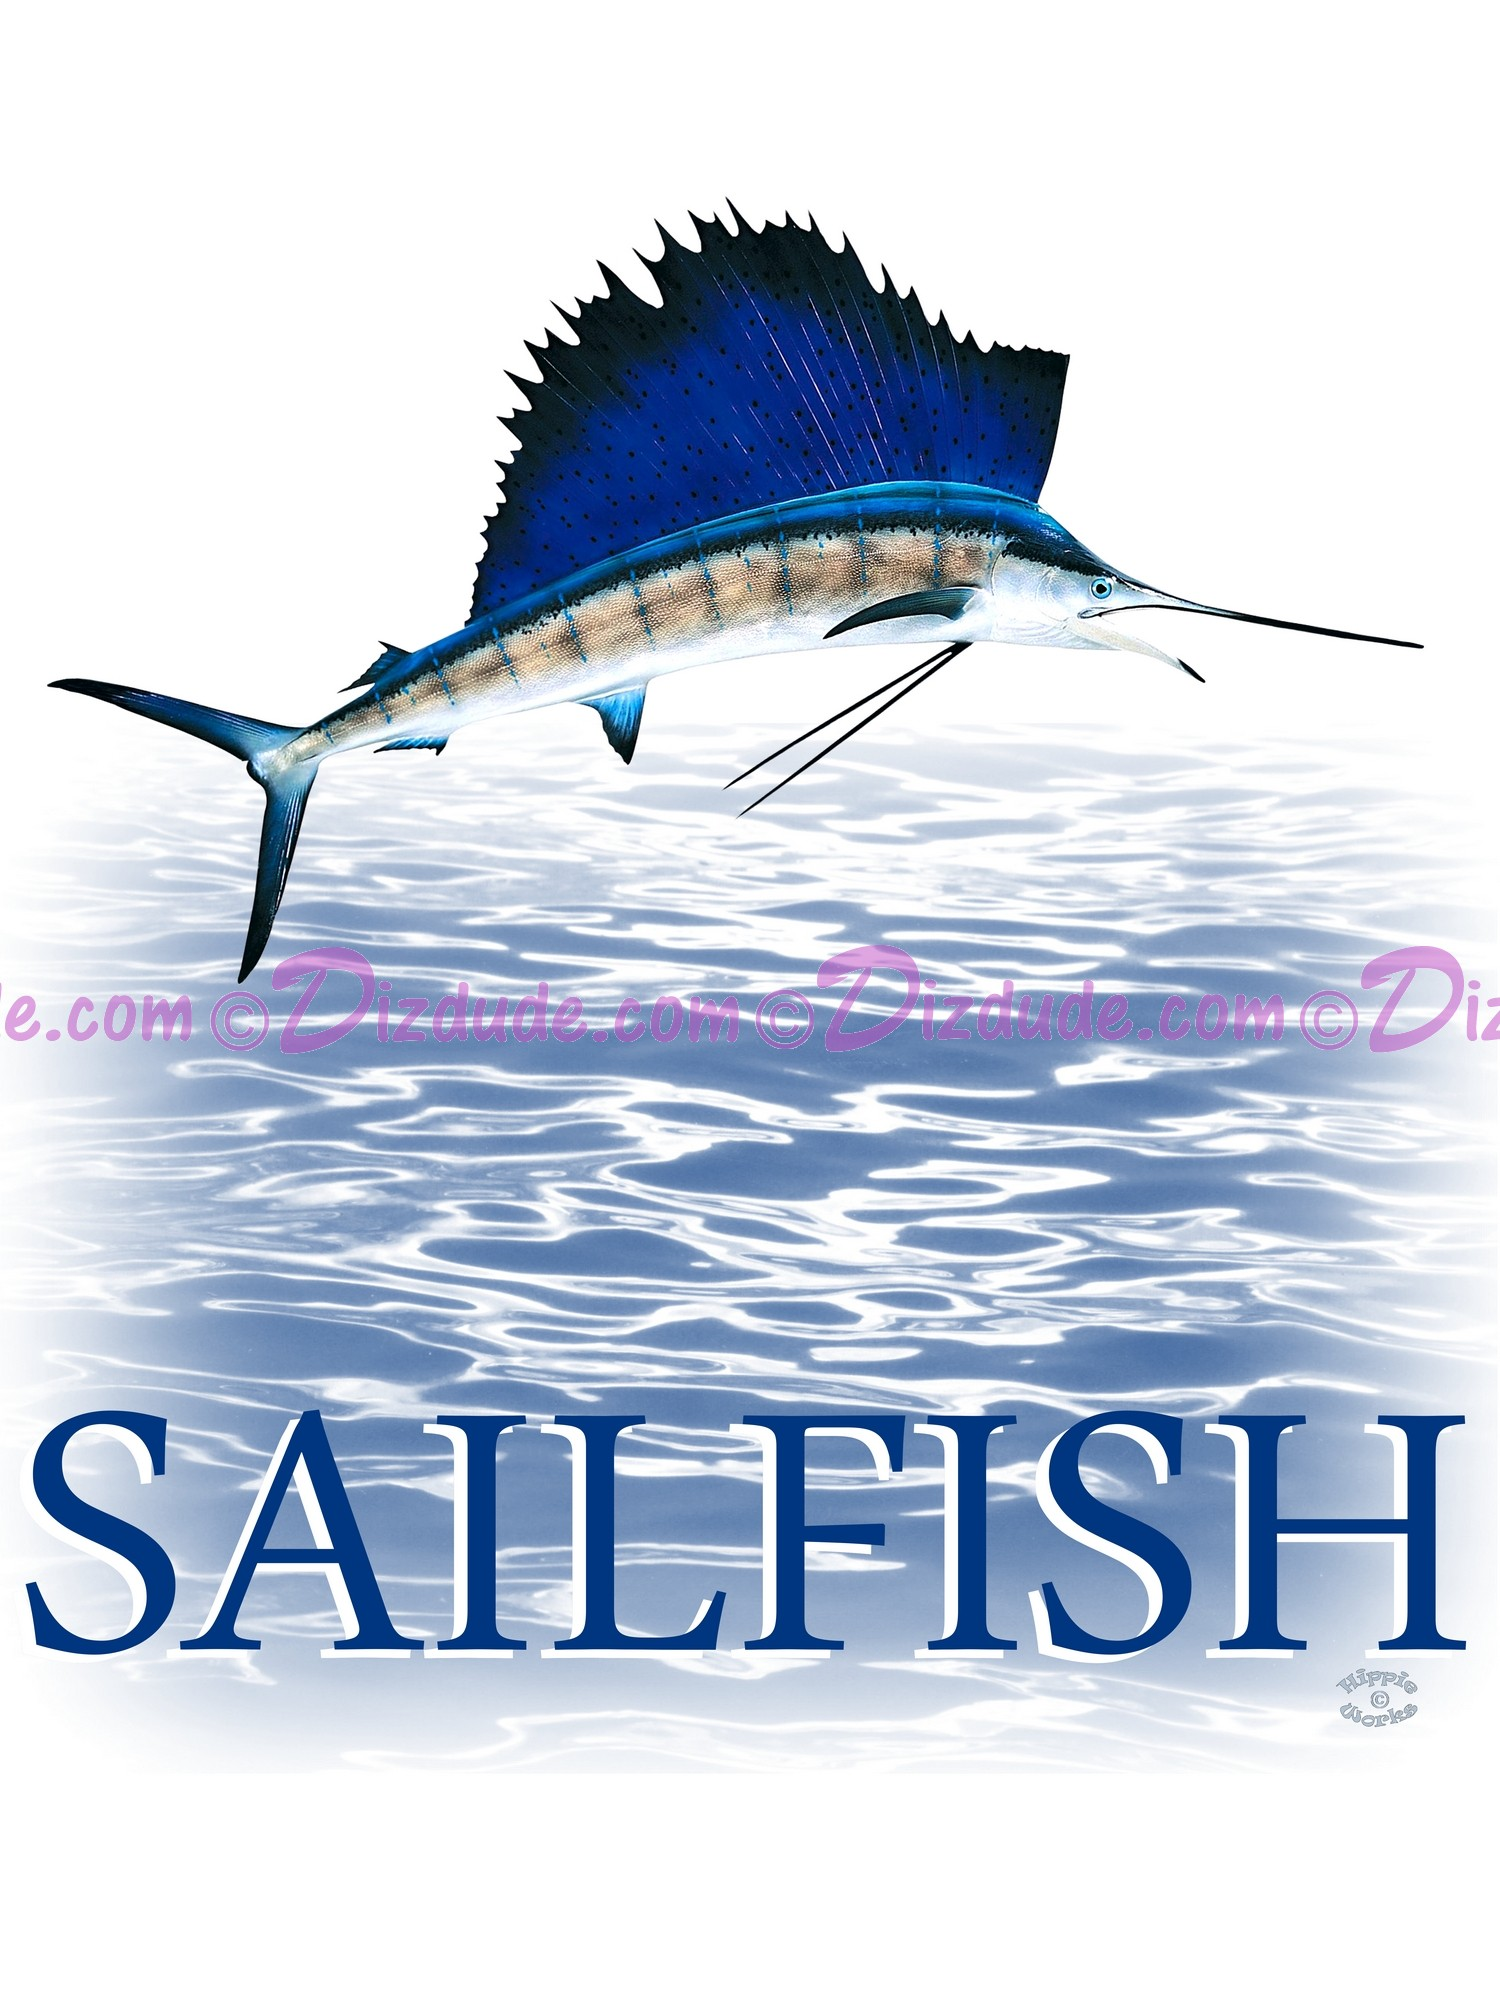 Sailfish T-Shirt or Tank Top  (Tshirt, T shirt or Tee) © Hippieworks